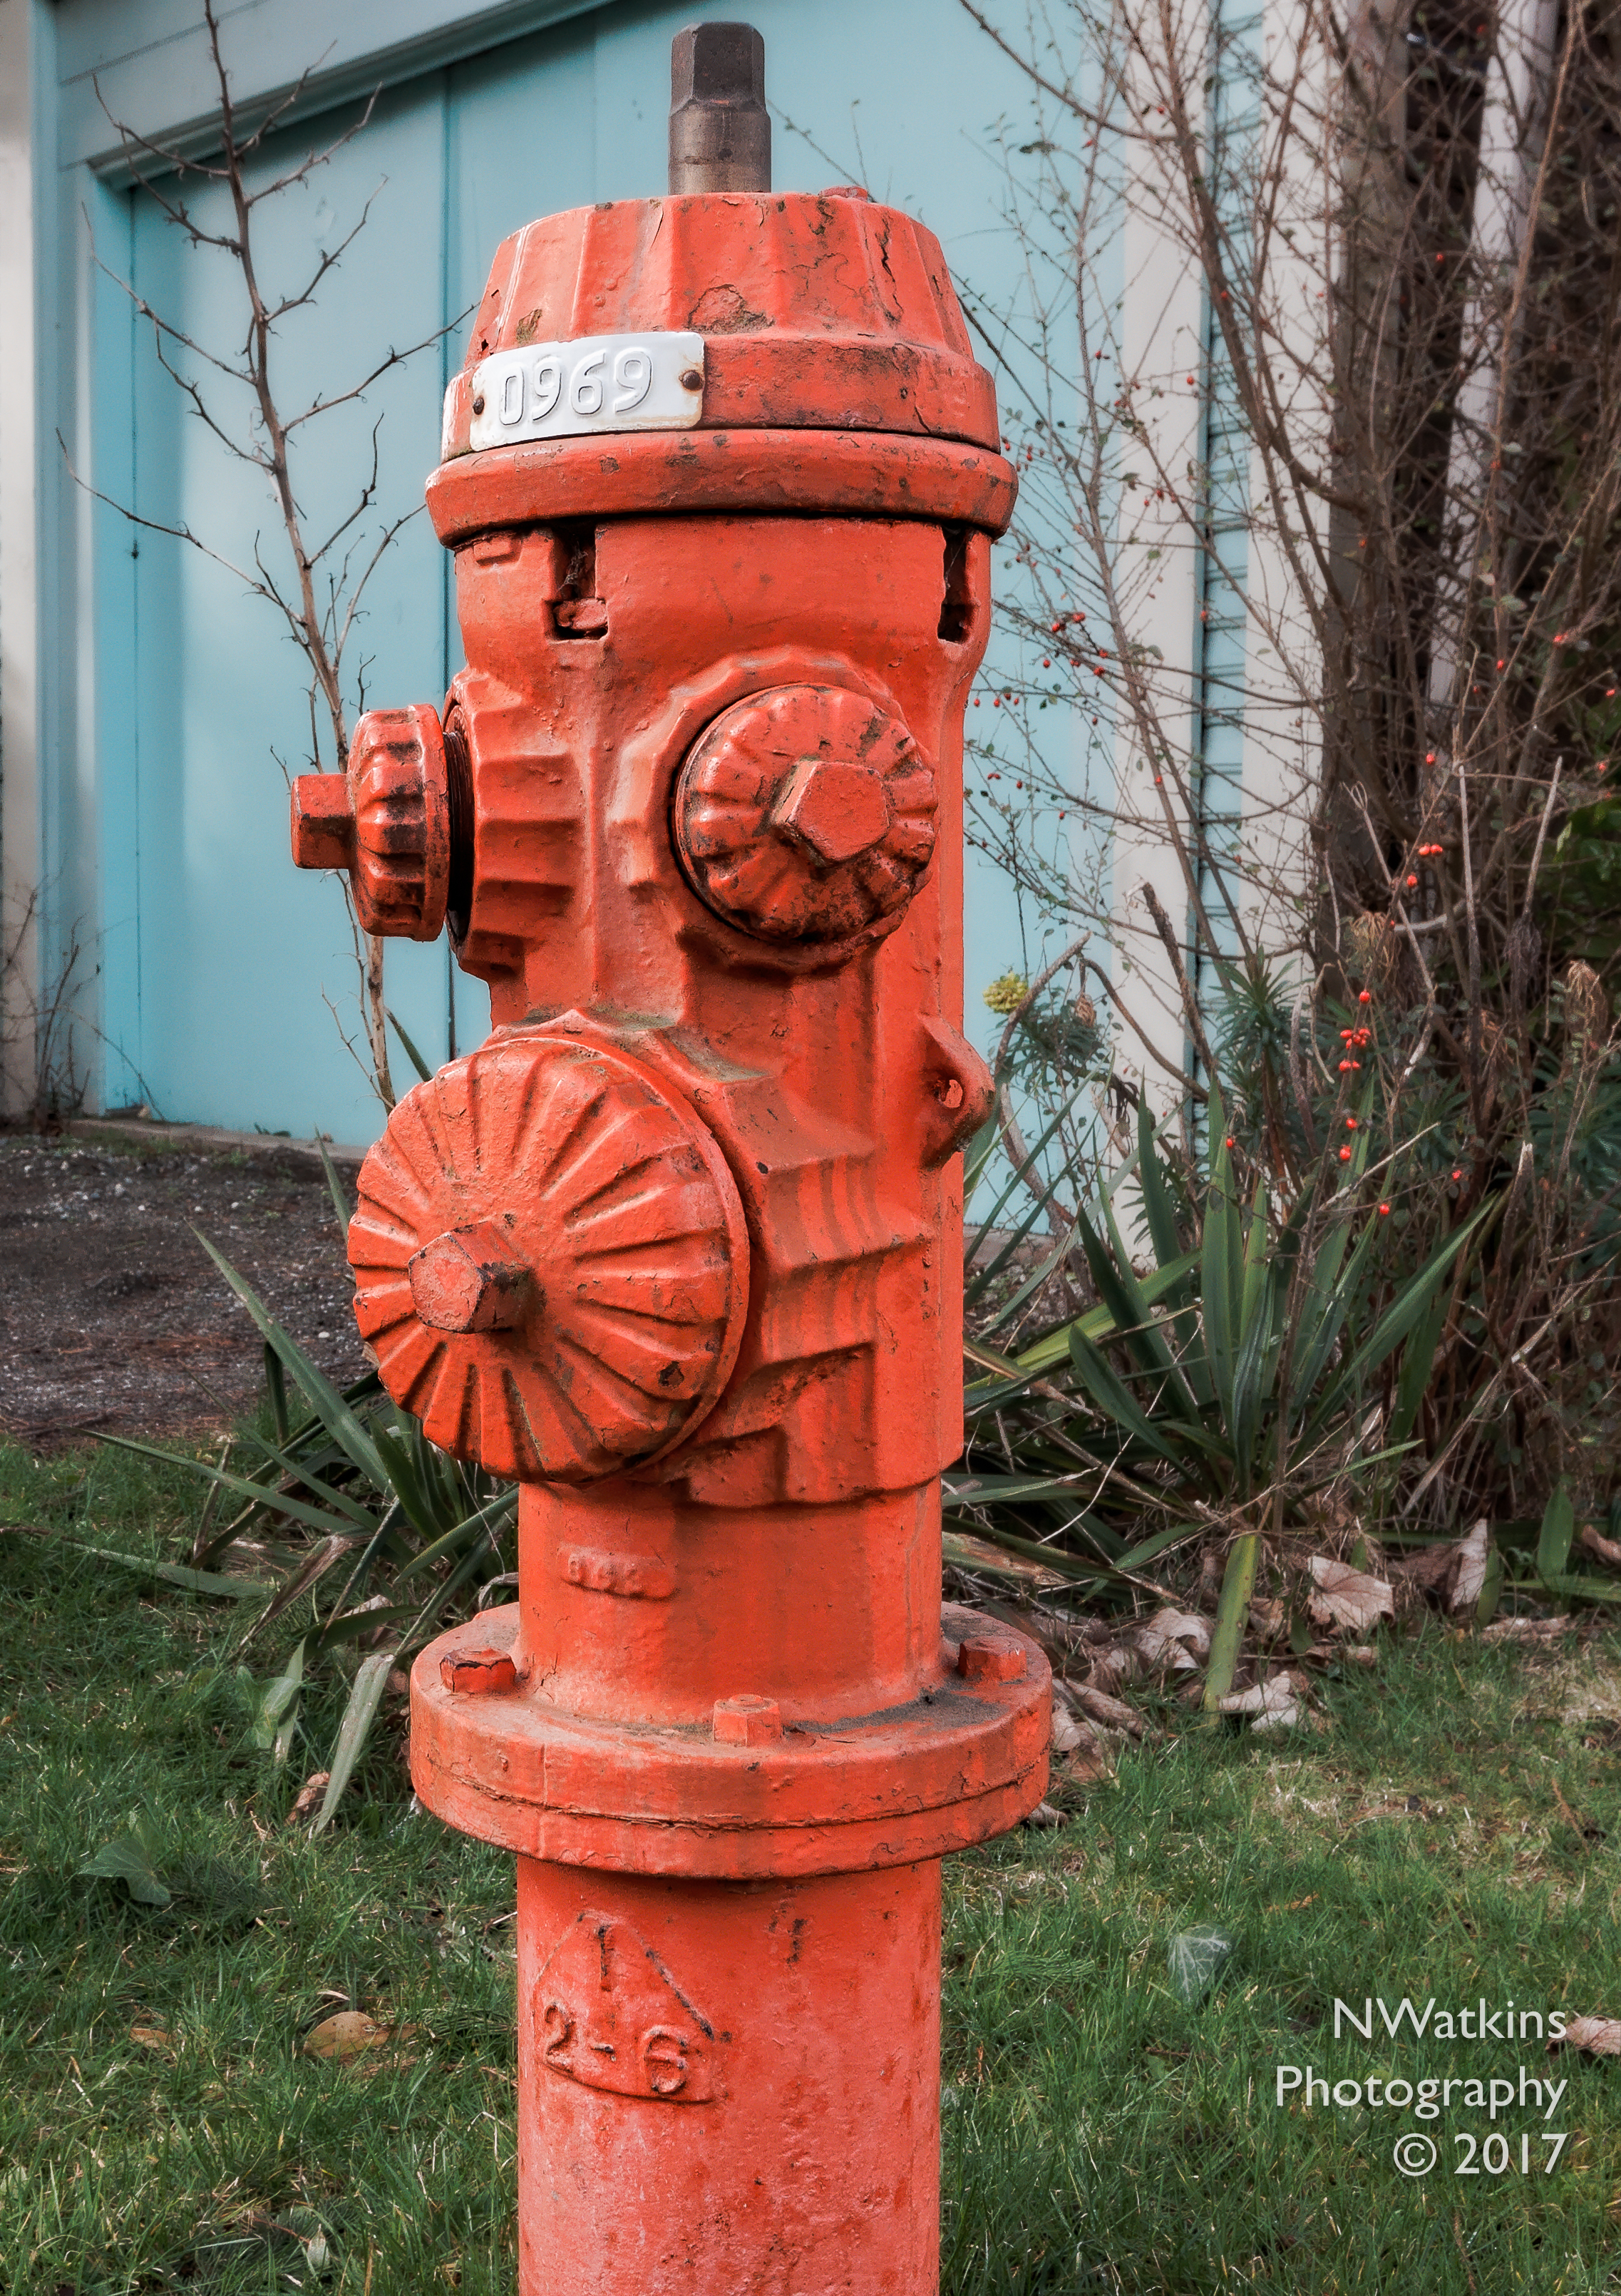 cobc-fire-hydrant